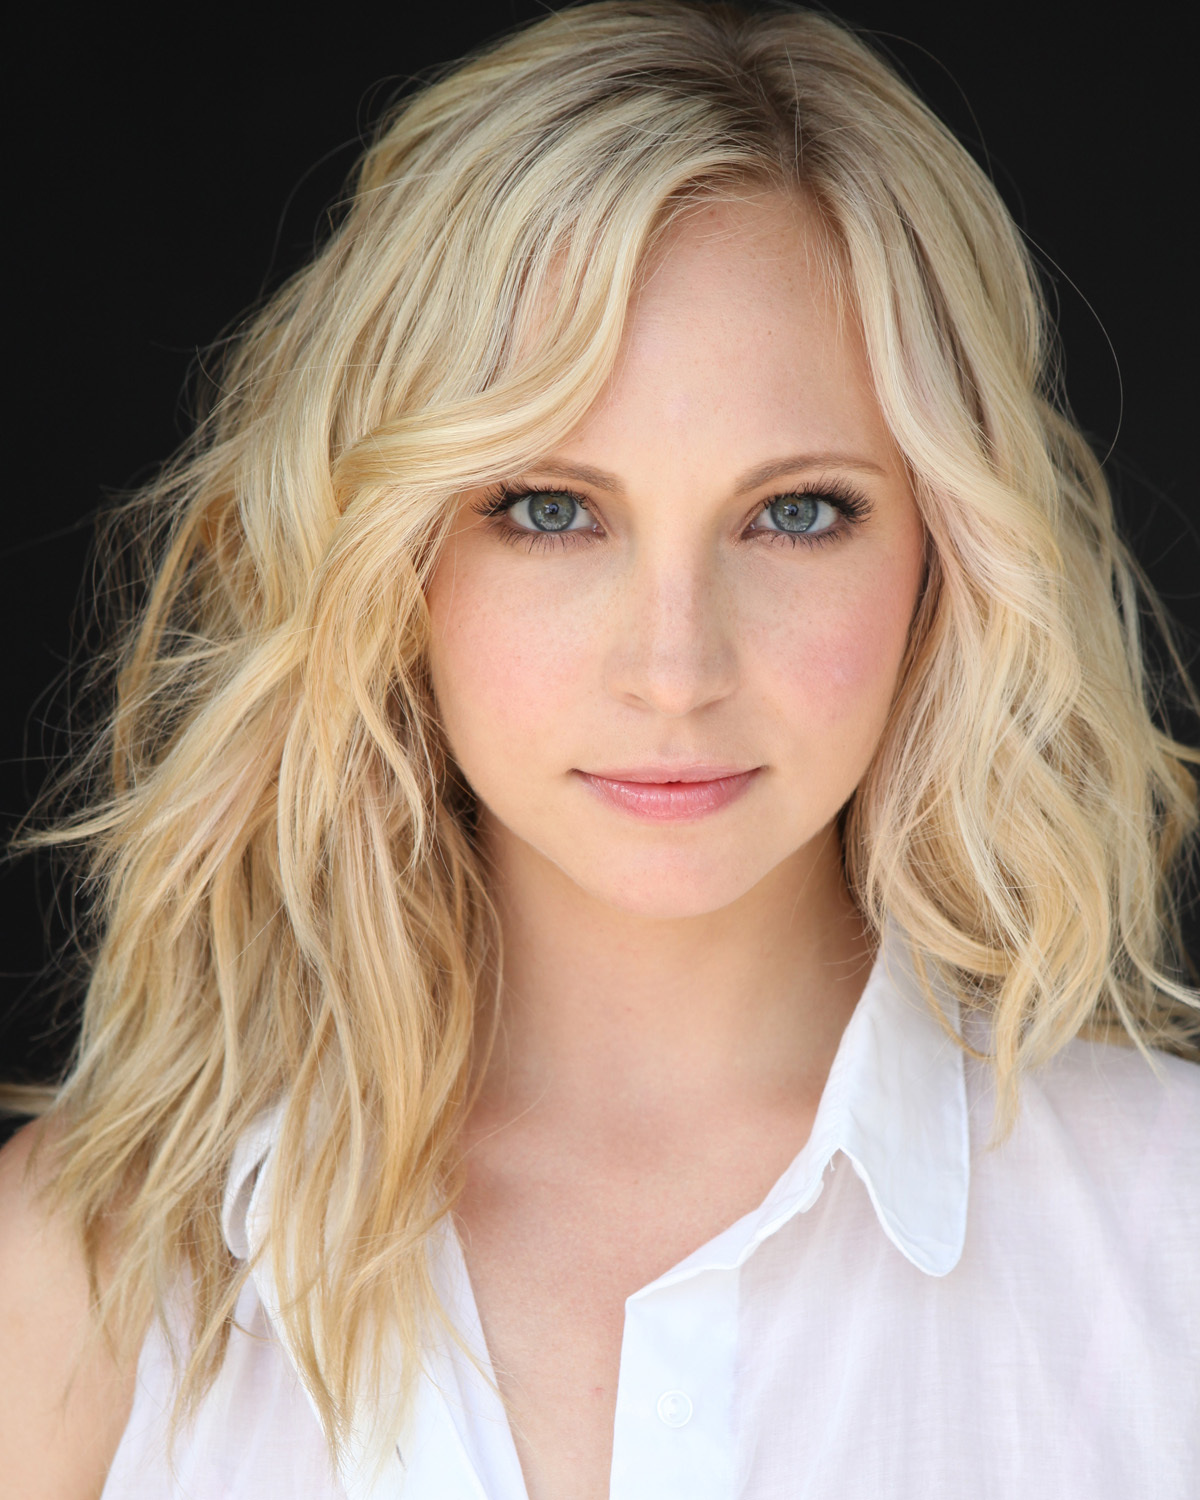 candice king hot